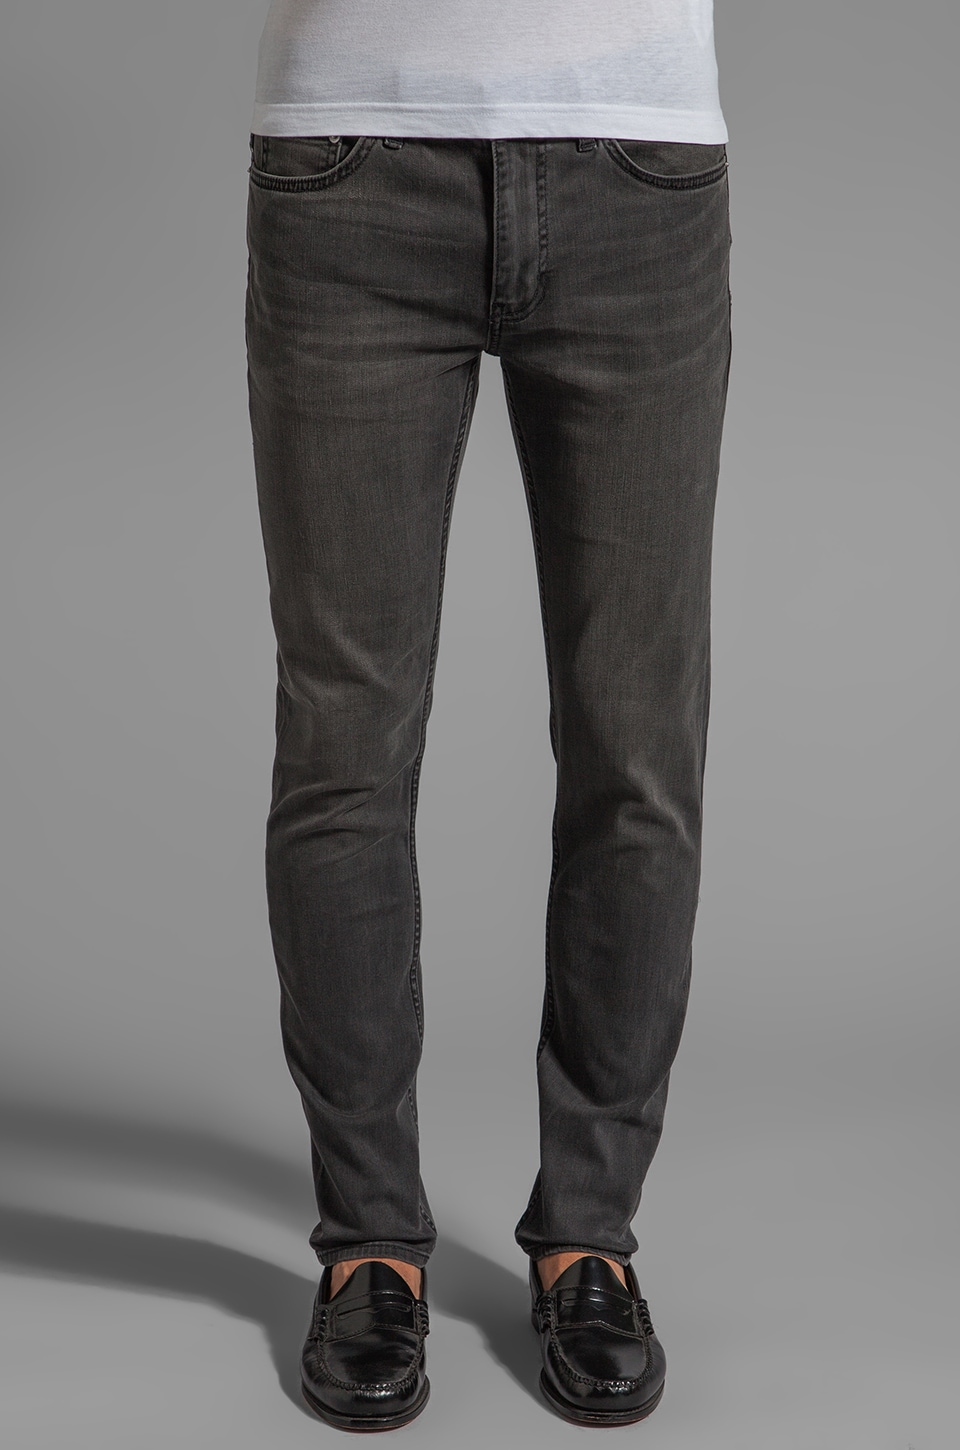 BLK DNM Jeans 25 in Staple Grey